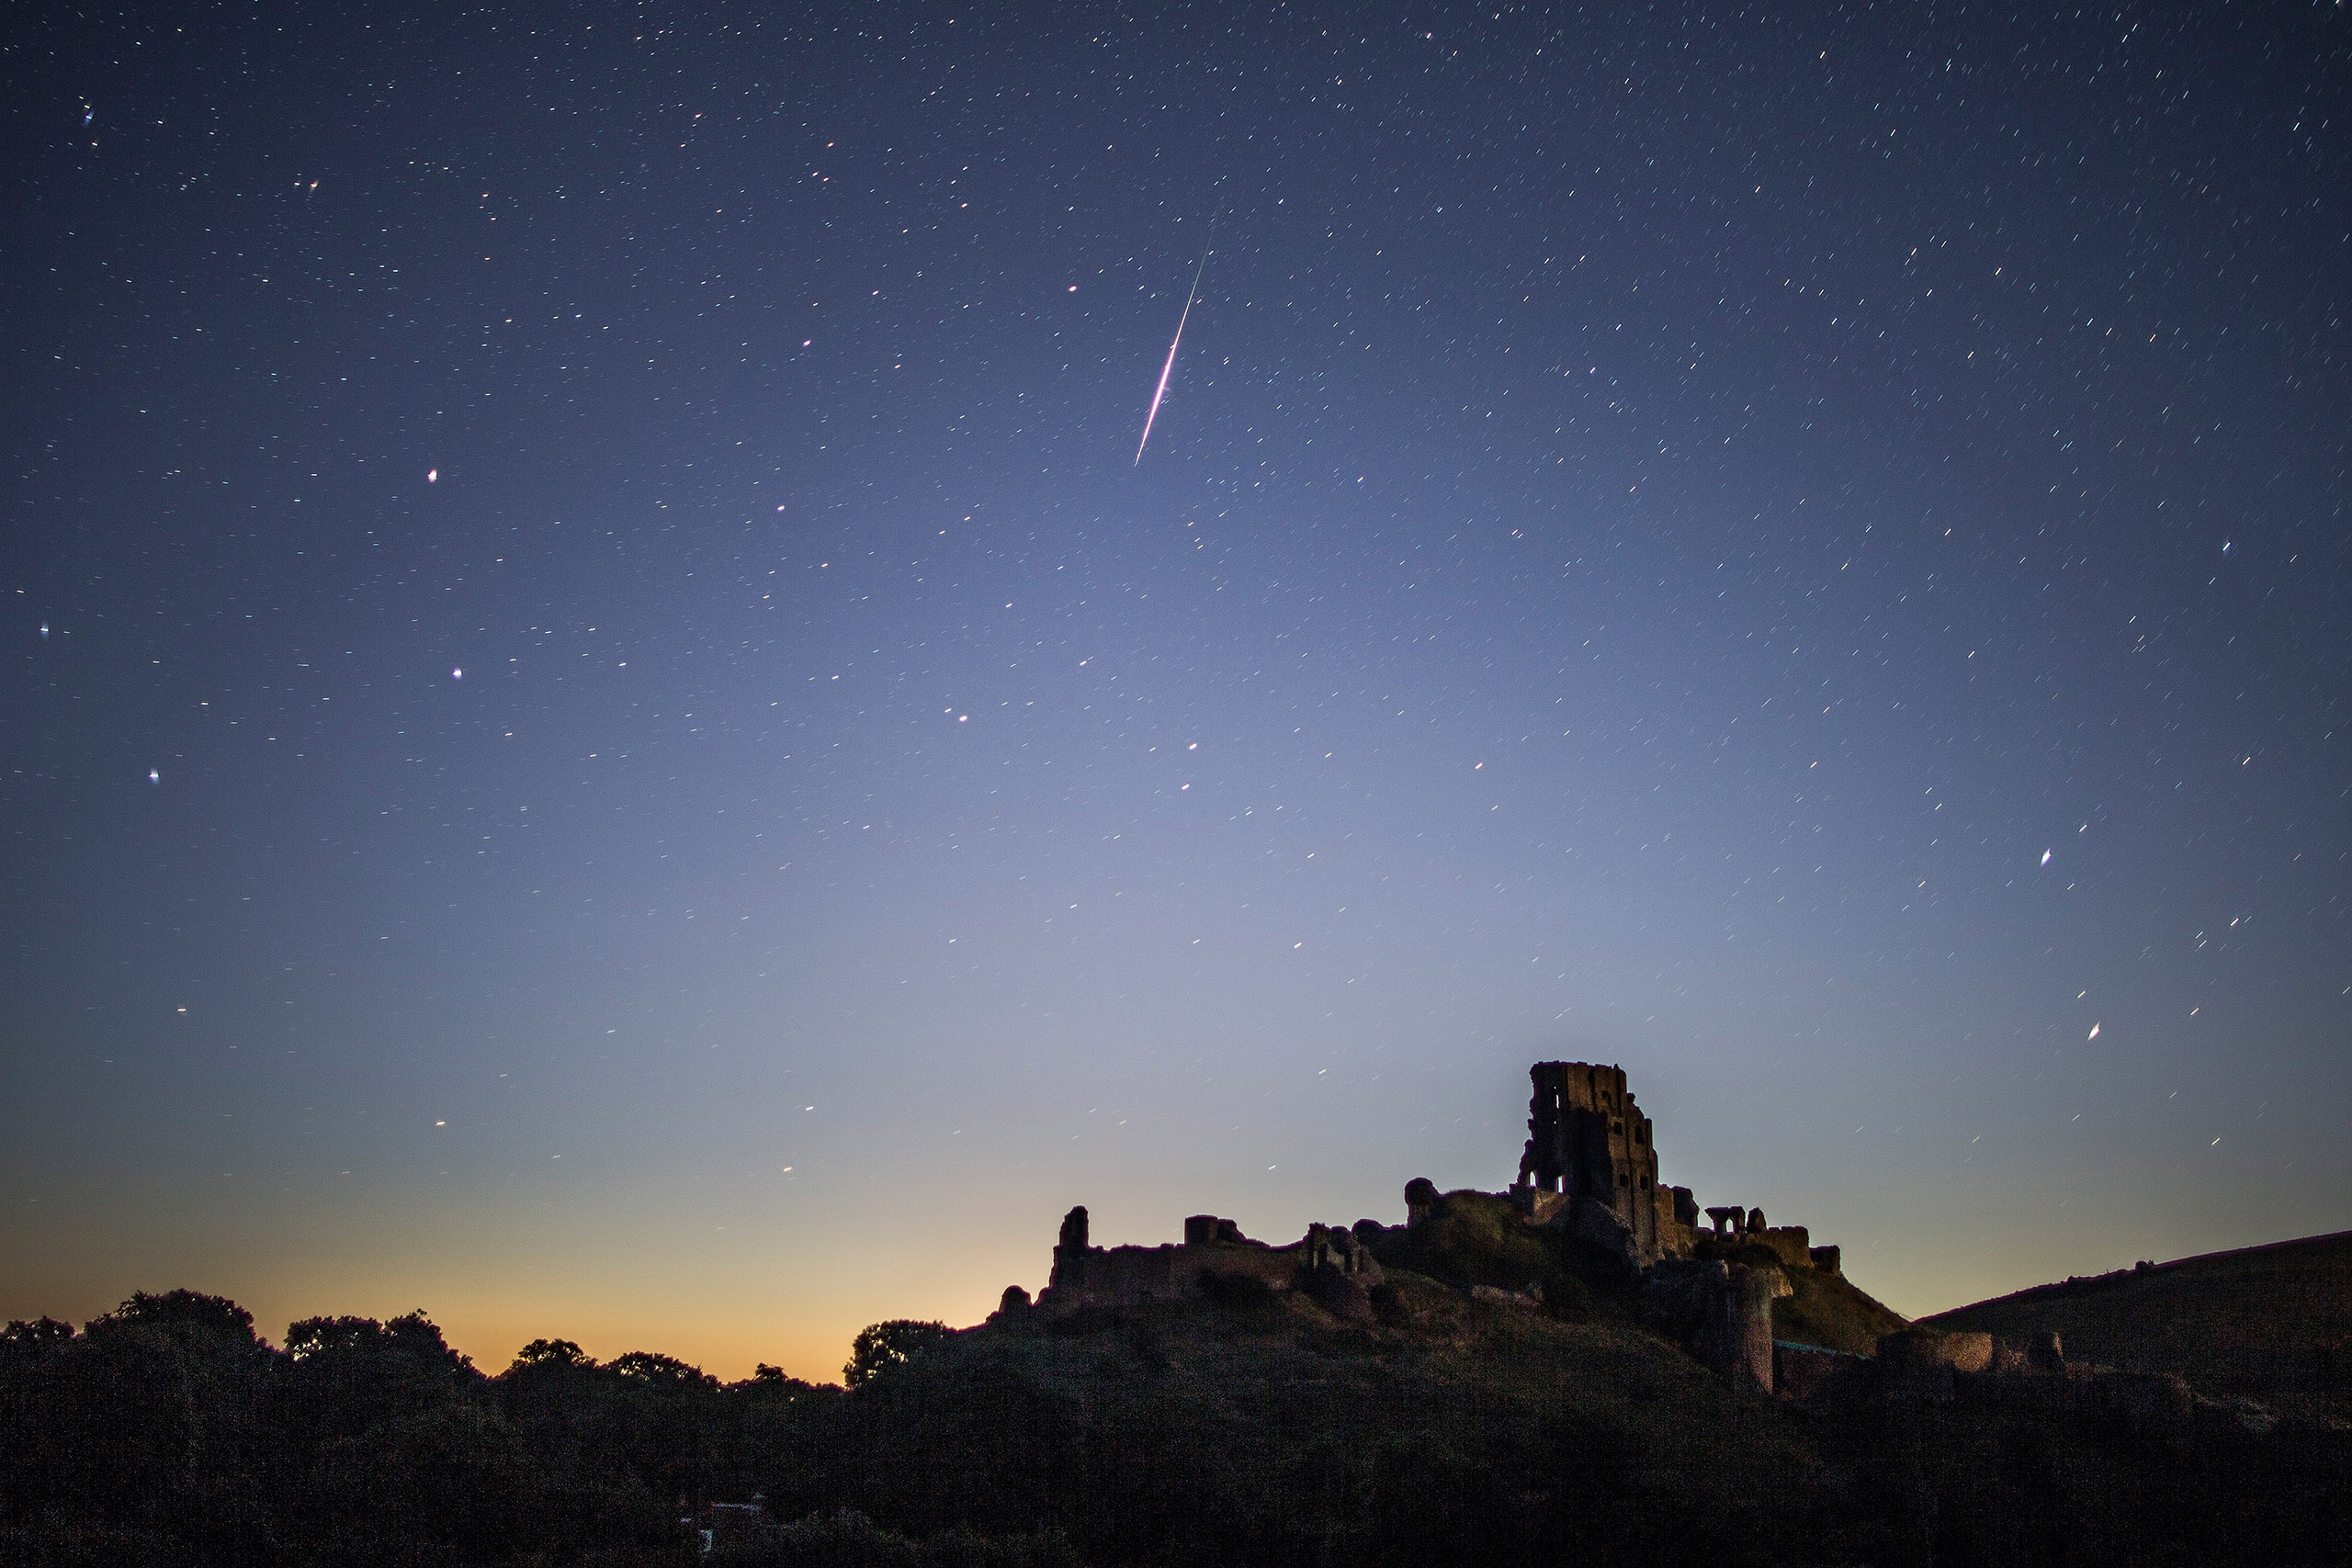 A Perseid meteor flashes across the night sky above Corfe Castle, United Kingdom, on Aug. 12, 2016.